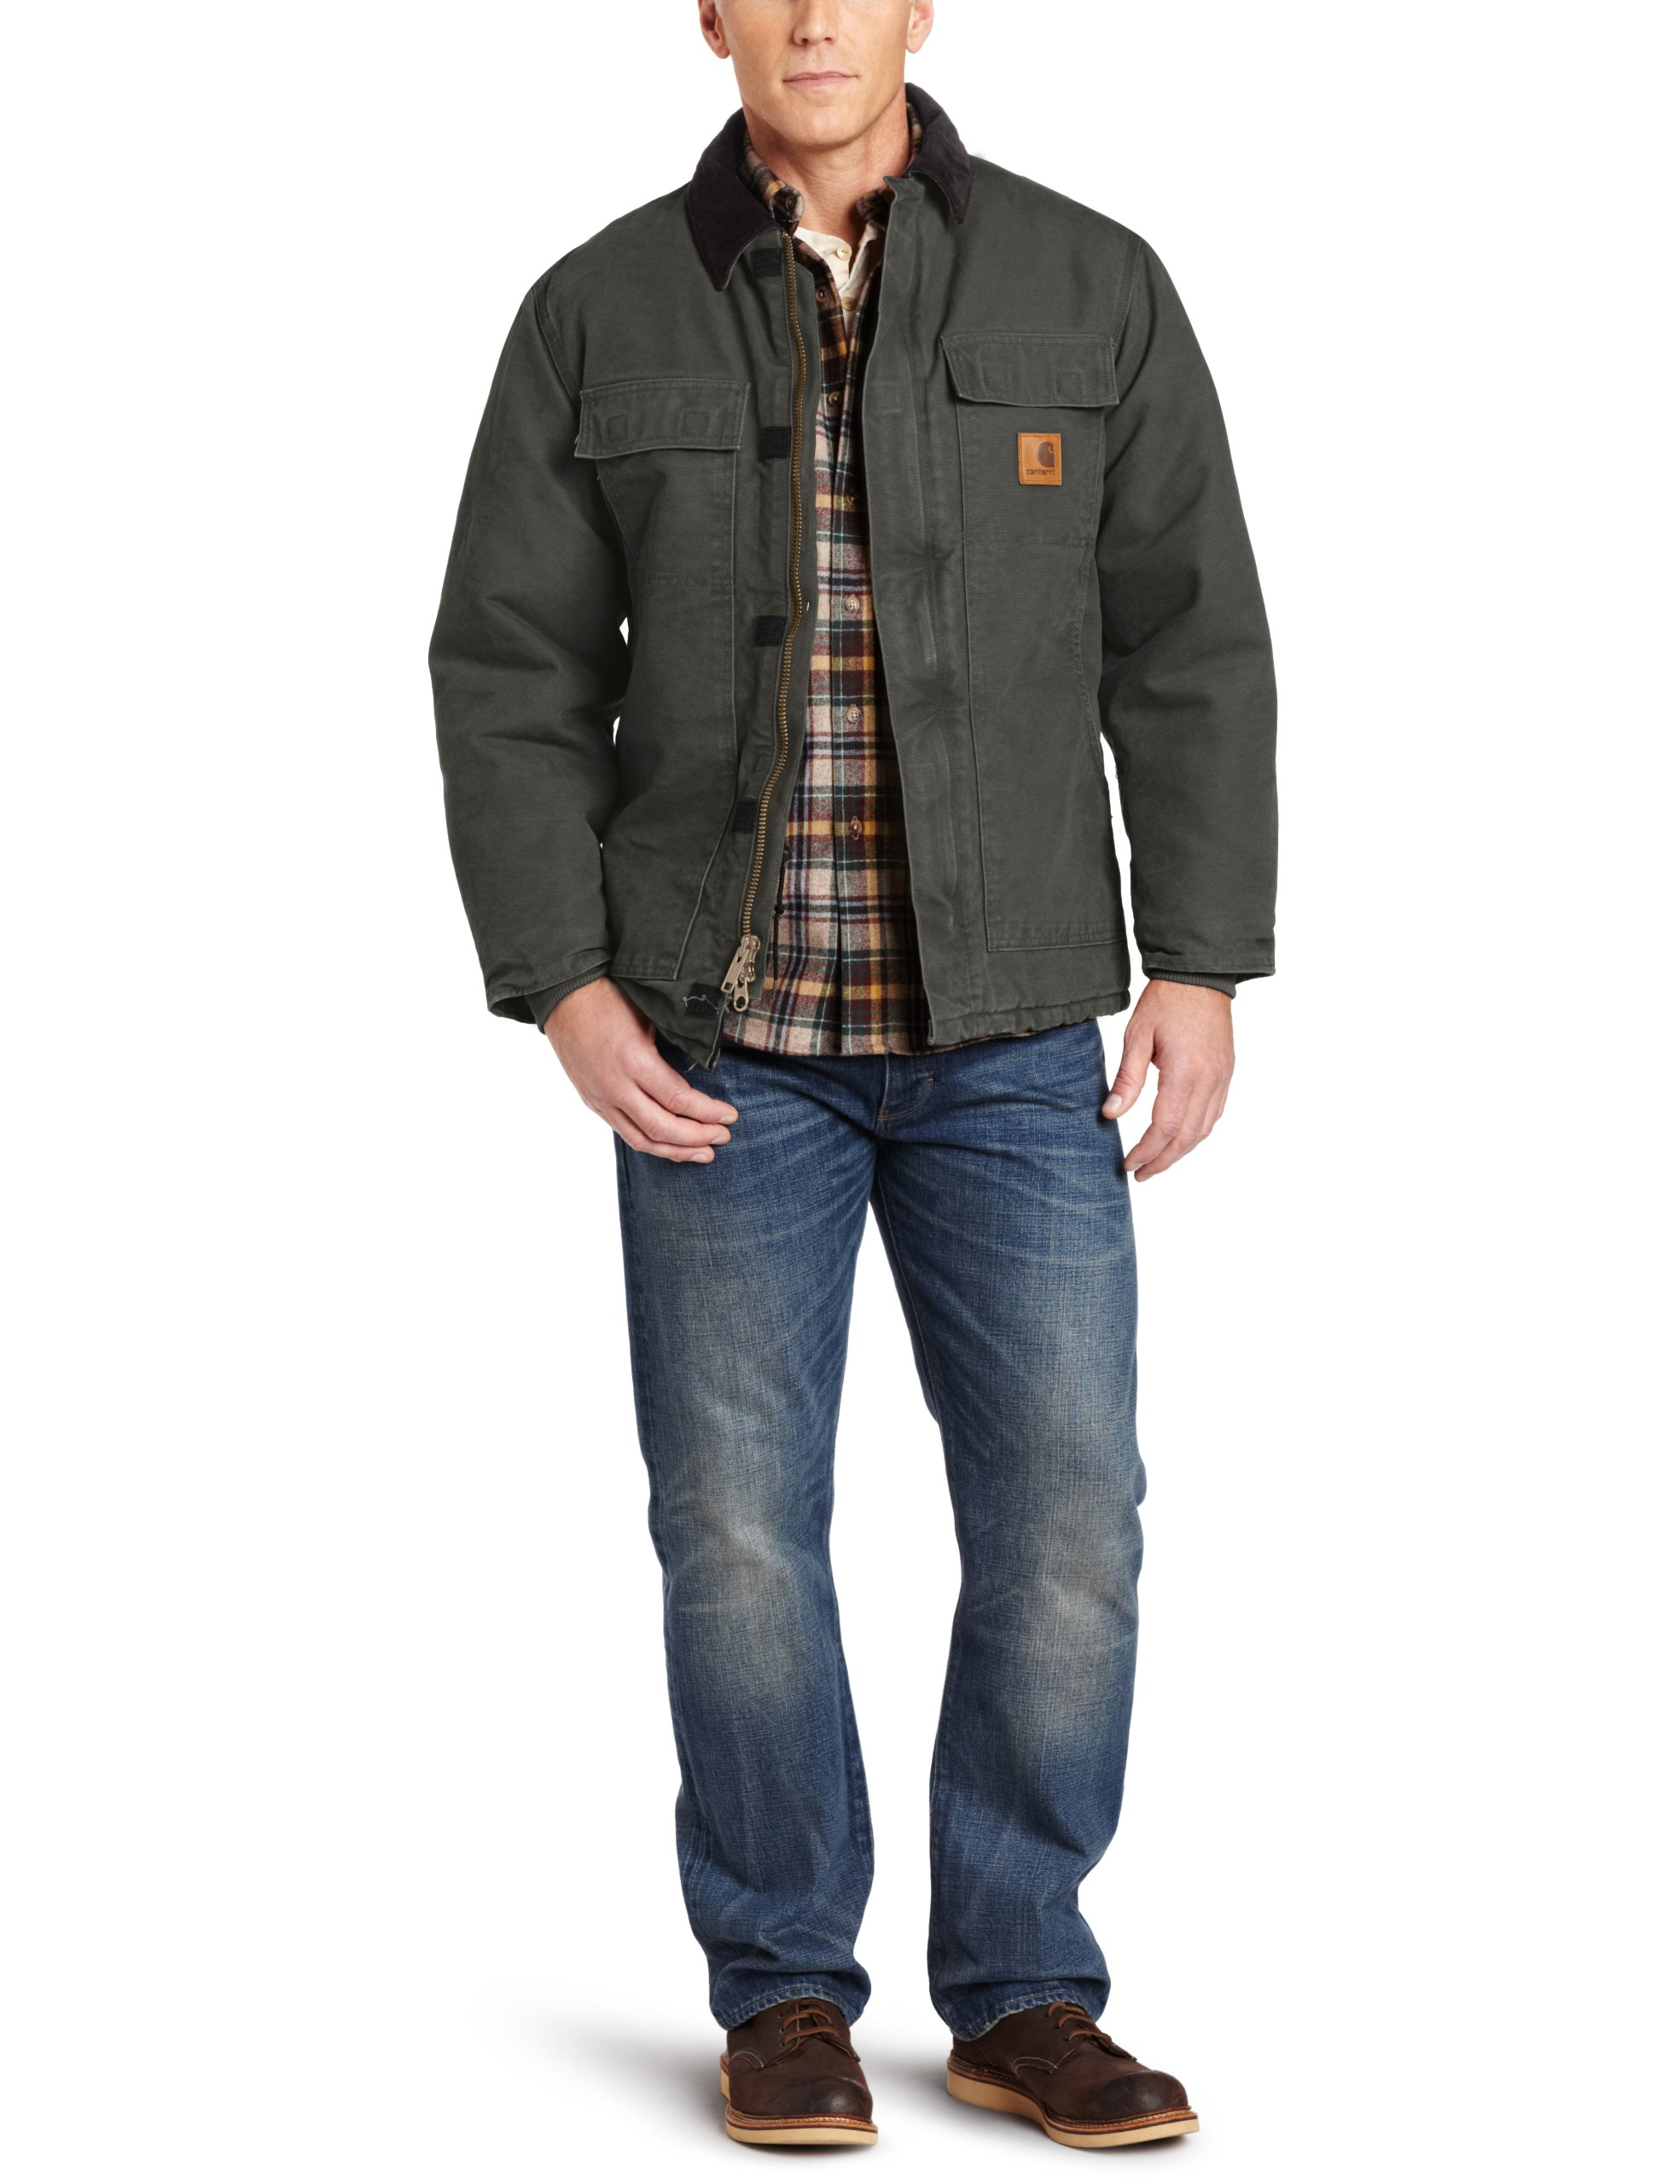 Carhartt Men's Arctic Quilt Lined Sandstone Traditional Coat C26,Moss,Small by Carhartt